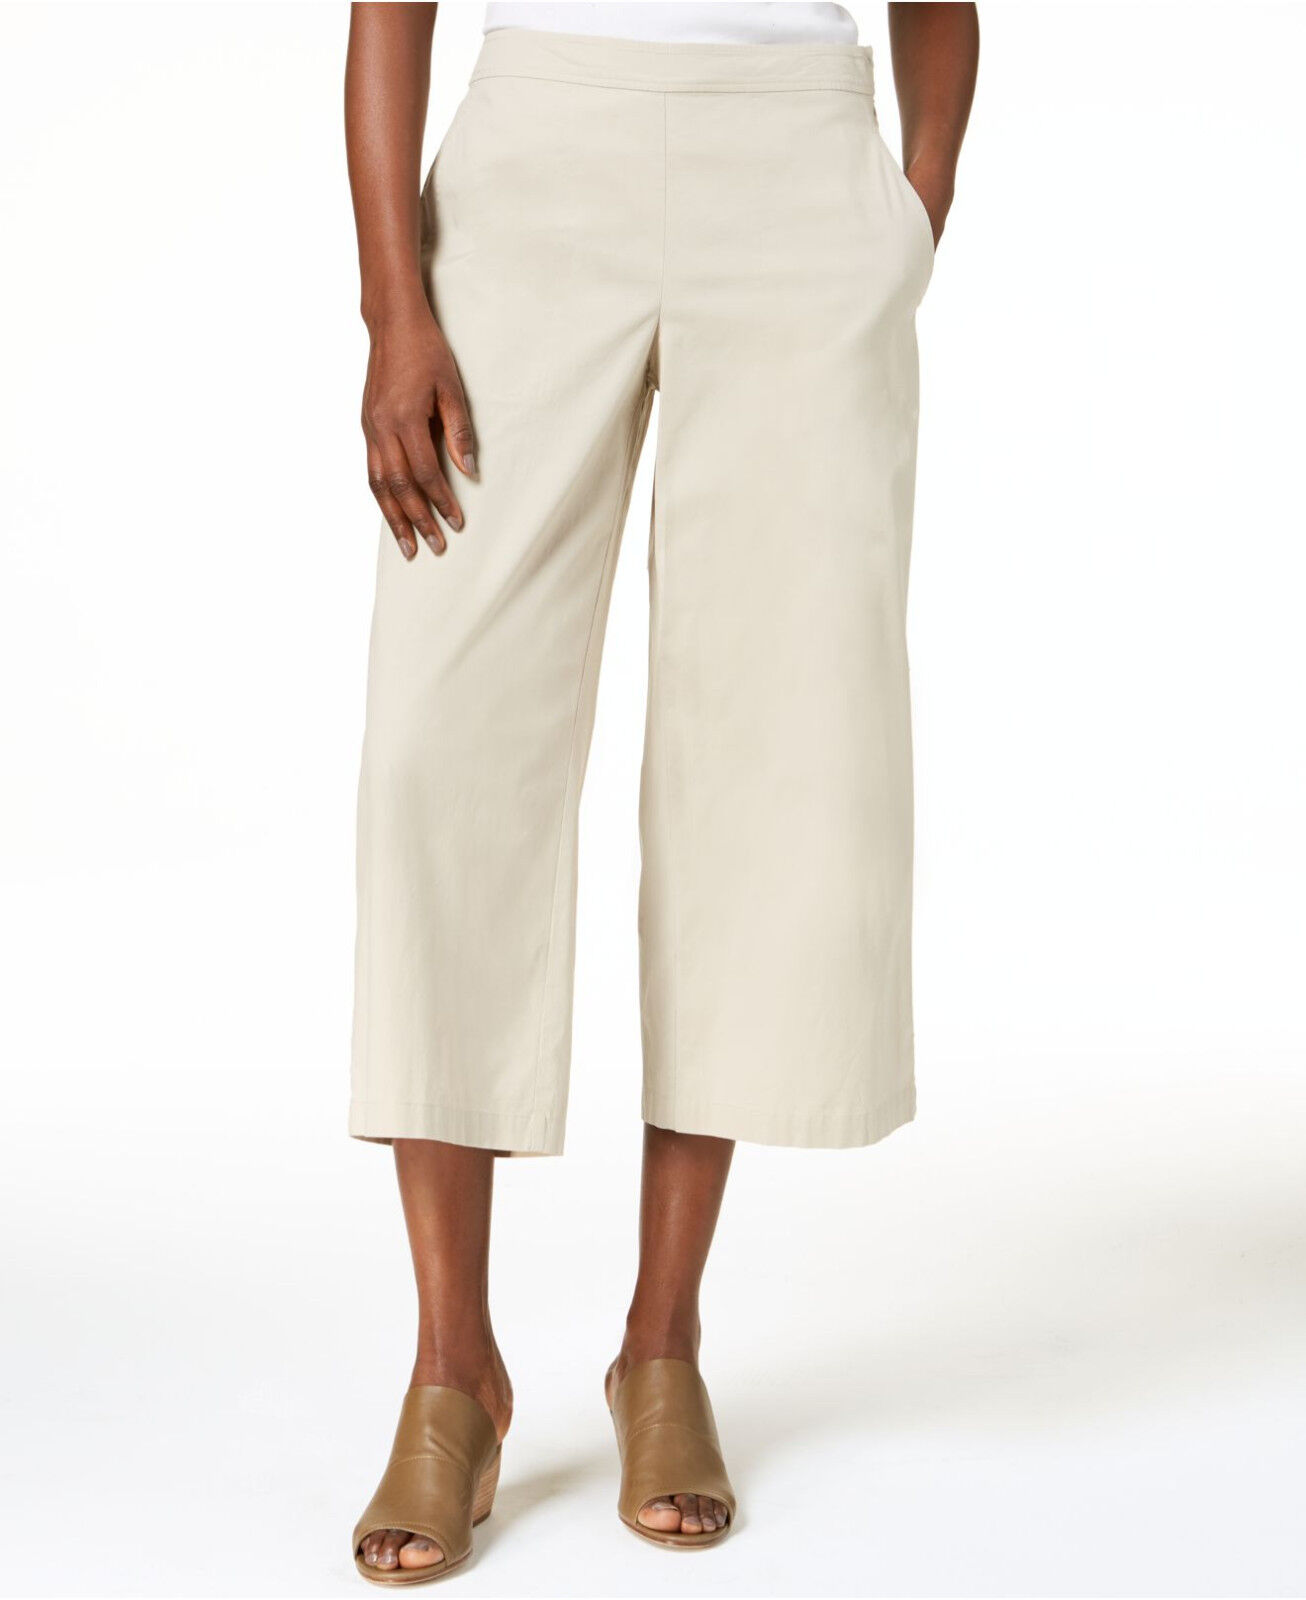 188 Eileen Fisher Pebble Organic Cotton Wide Leg Cropped Pants Petite  PP